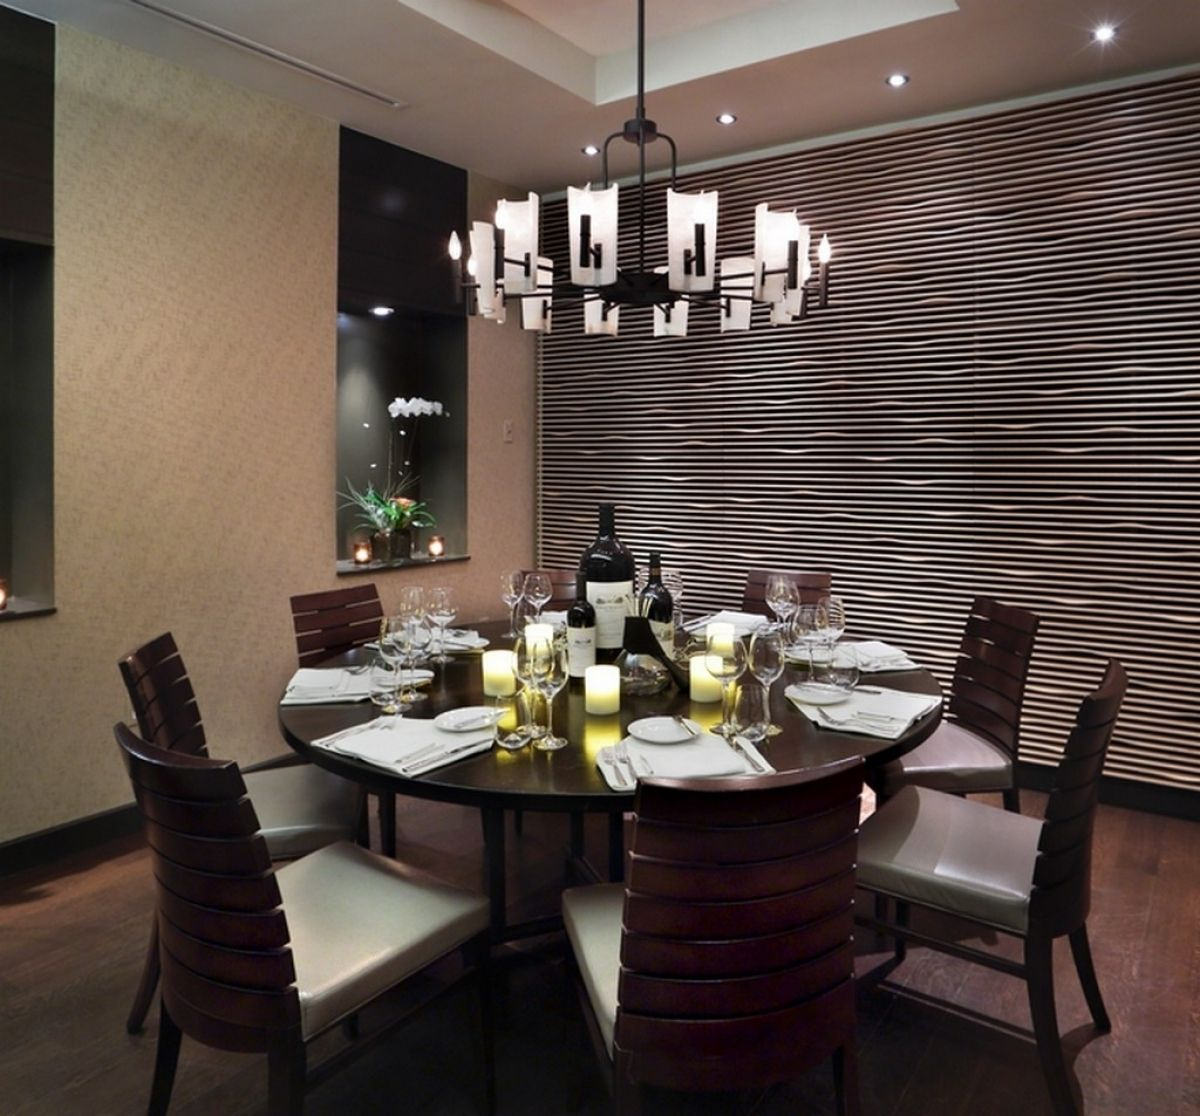 Contemporary Dining Room Light Fixtures For Low Ceilings Above